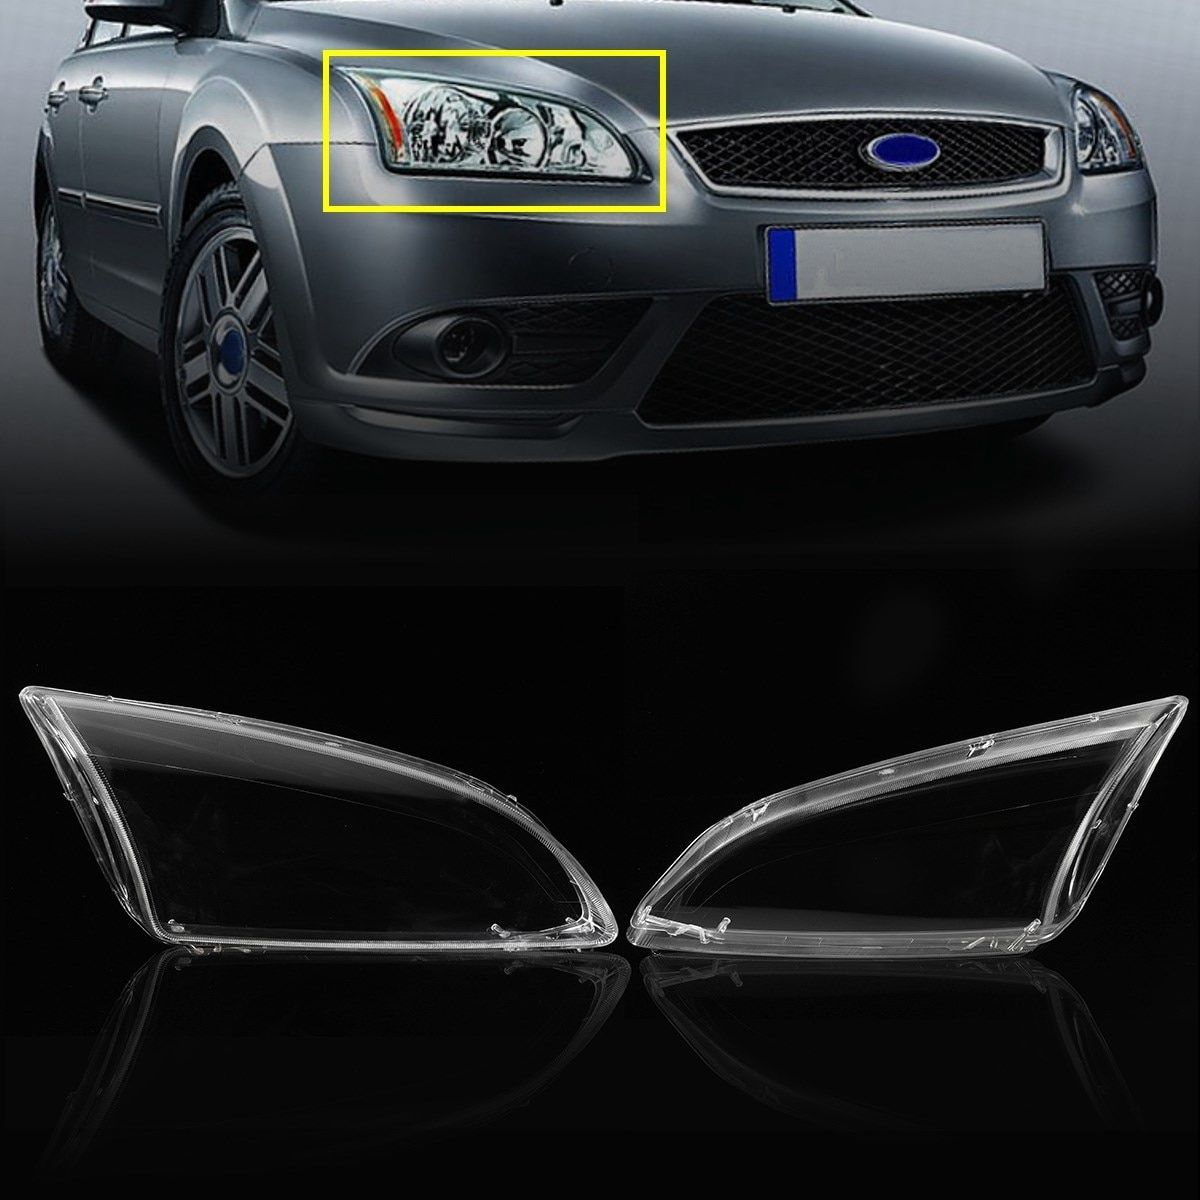 2Pcs Clear Left & Right Car Side Headlights Lens Lamp Hoods Cover Glasses For Ford For Focus 2005 2006 2007